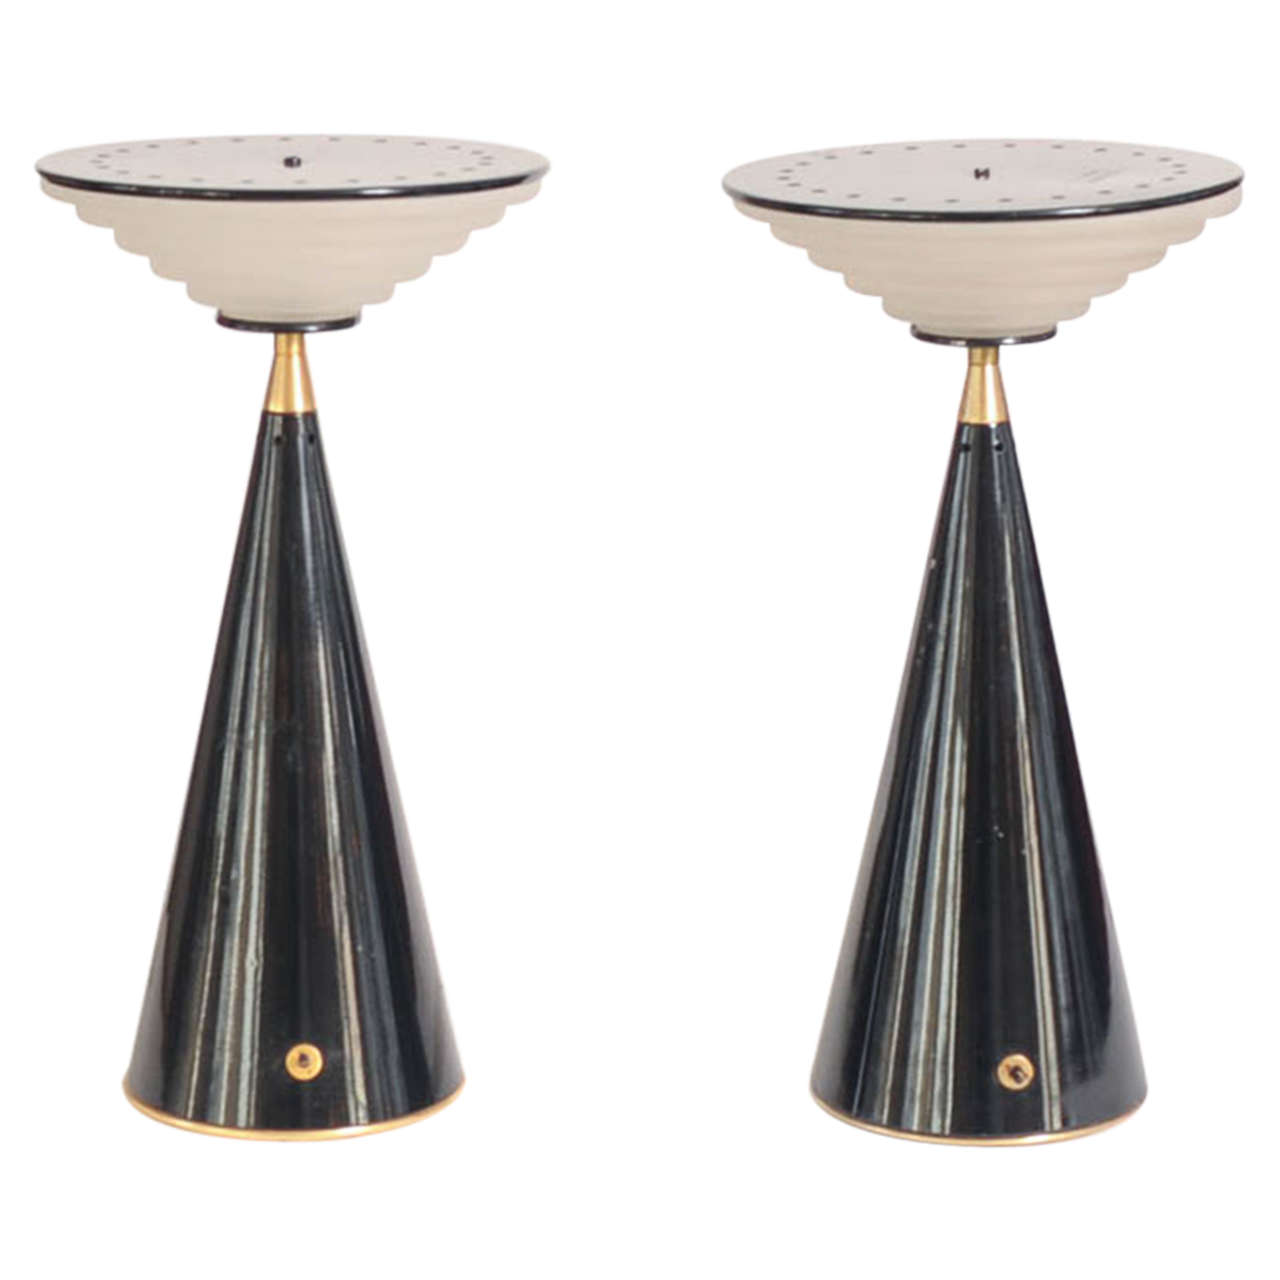 Set Of Two Table Lamps Set Of Two Table Lamps Ziggurat By Shigeaki Asahara For Stilnovo